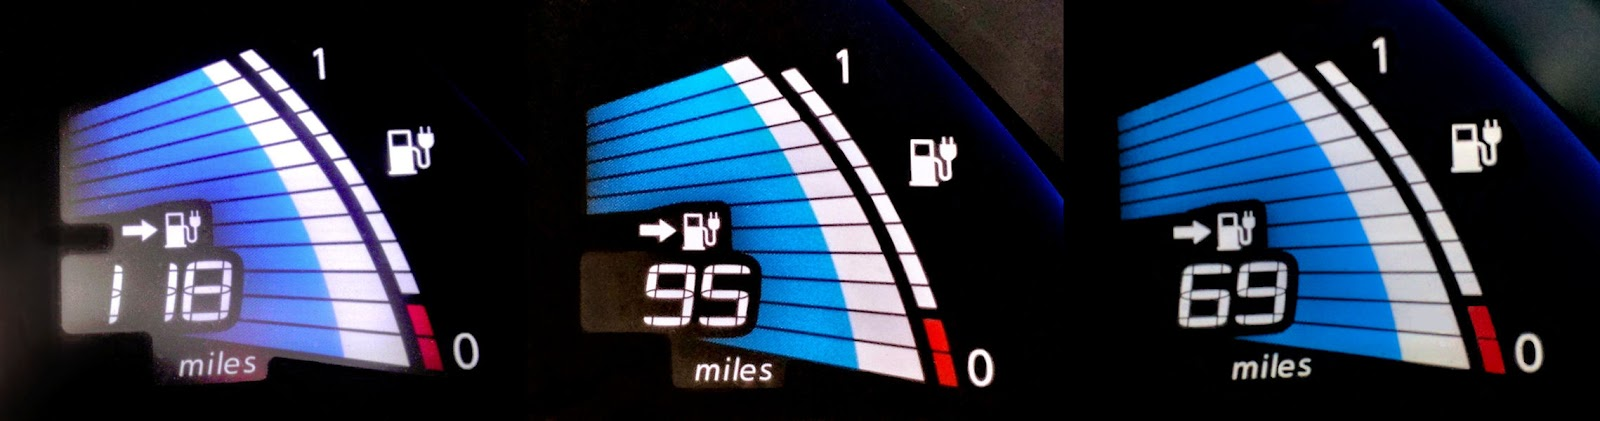 2011 Nissan Leaf Fuel Gauge, Fully Charged: New (left), 3 Years Old  (center), And 5 Years Old (right)